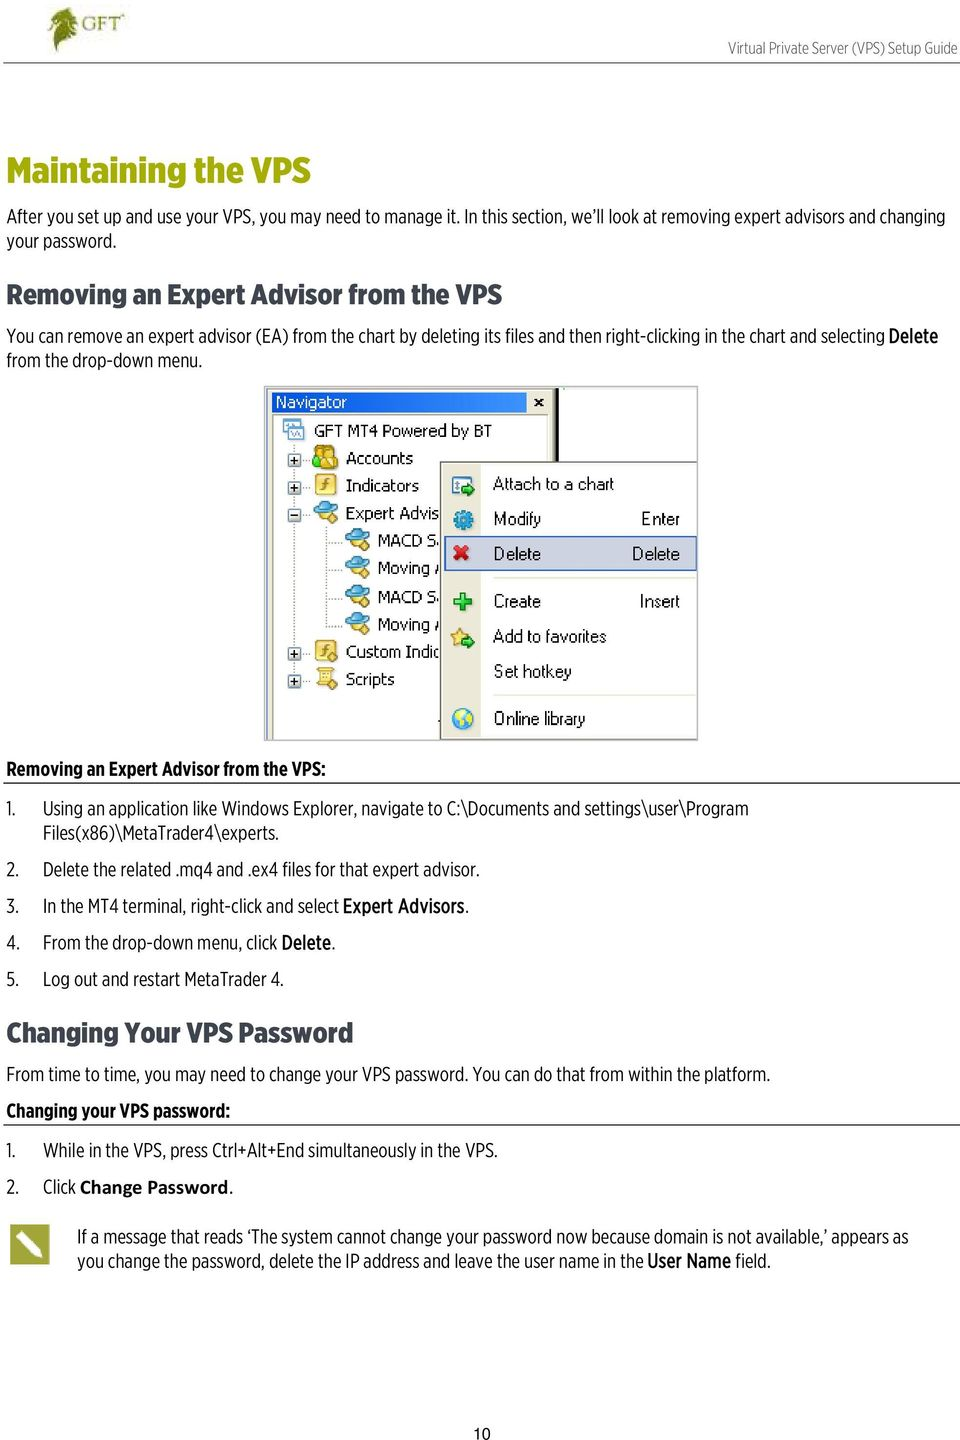 Removing an Expert Advisor from the VPS: 1. Using an application like Windows Explorer, navigate to C:\Documents and settings\user\program Files(x86)\MetaTrader4\experts. 2. Delete the related.